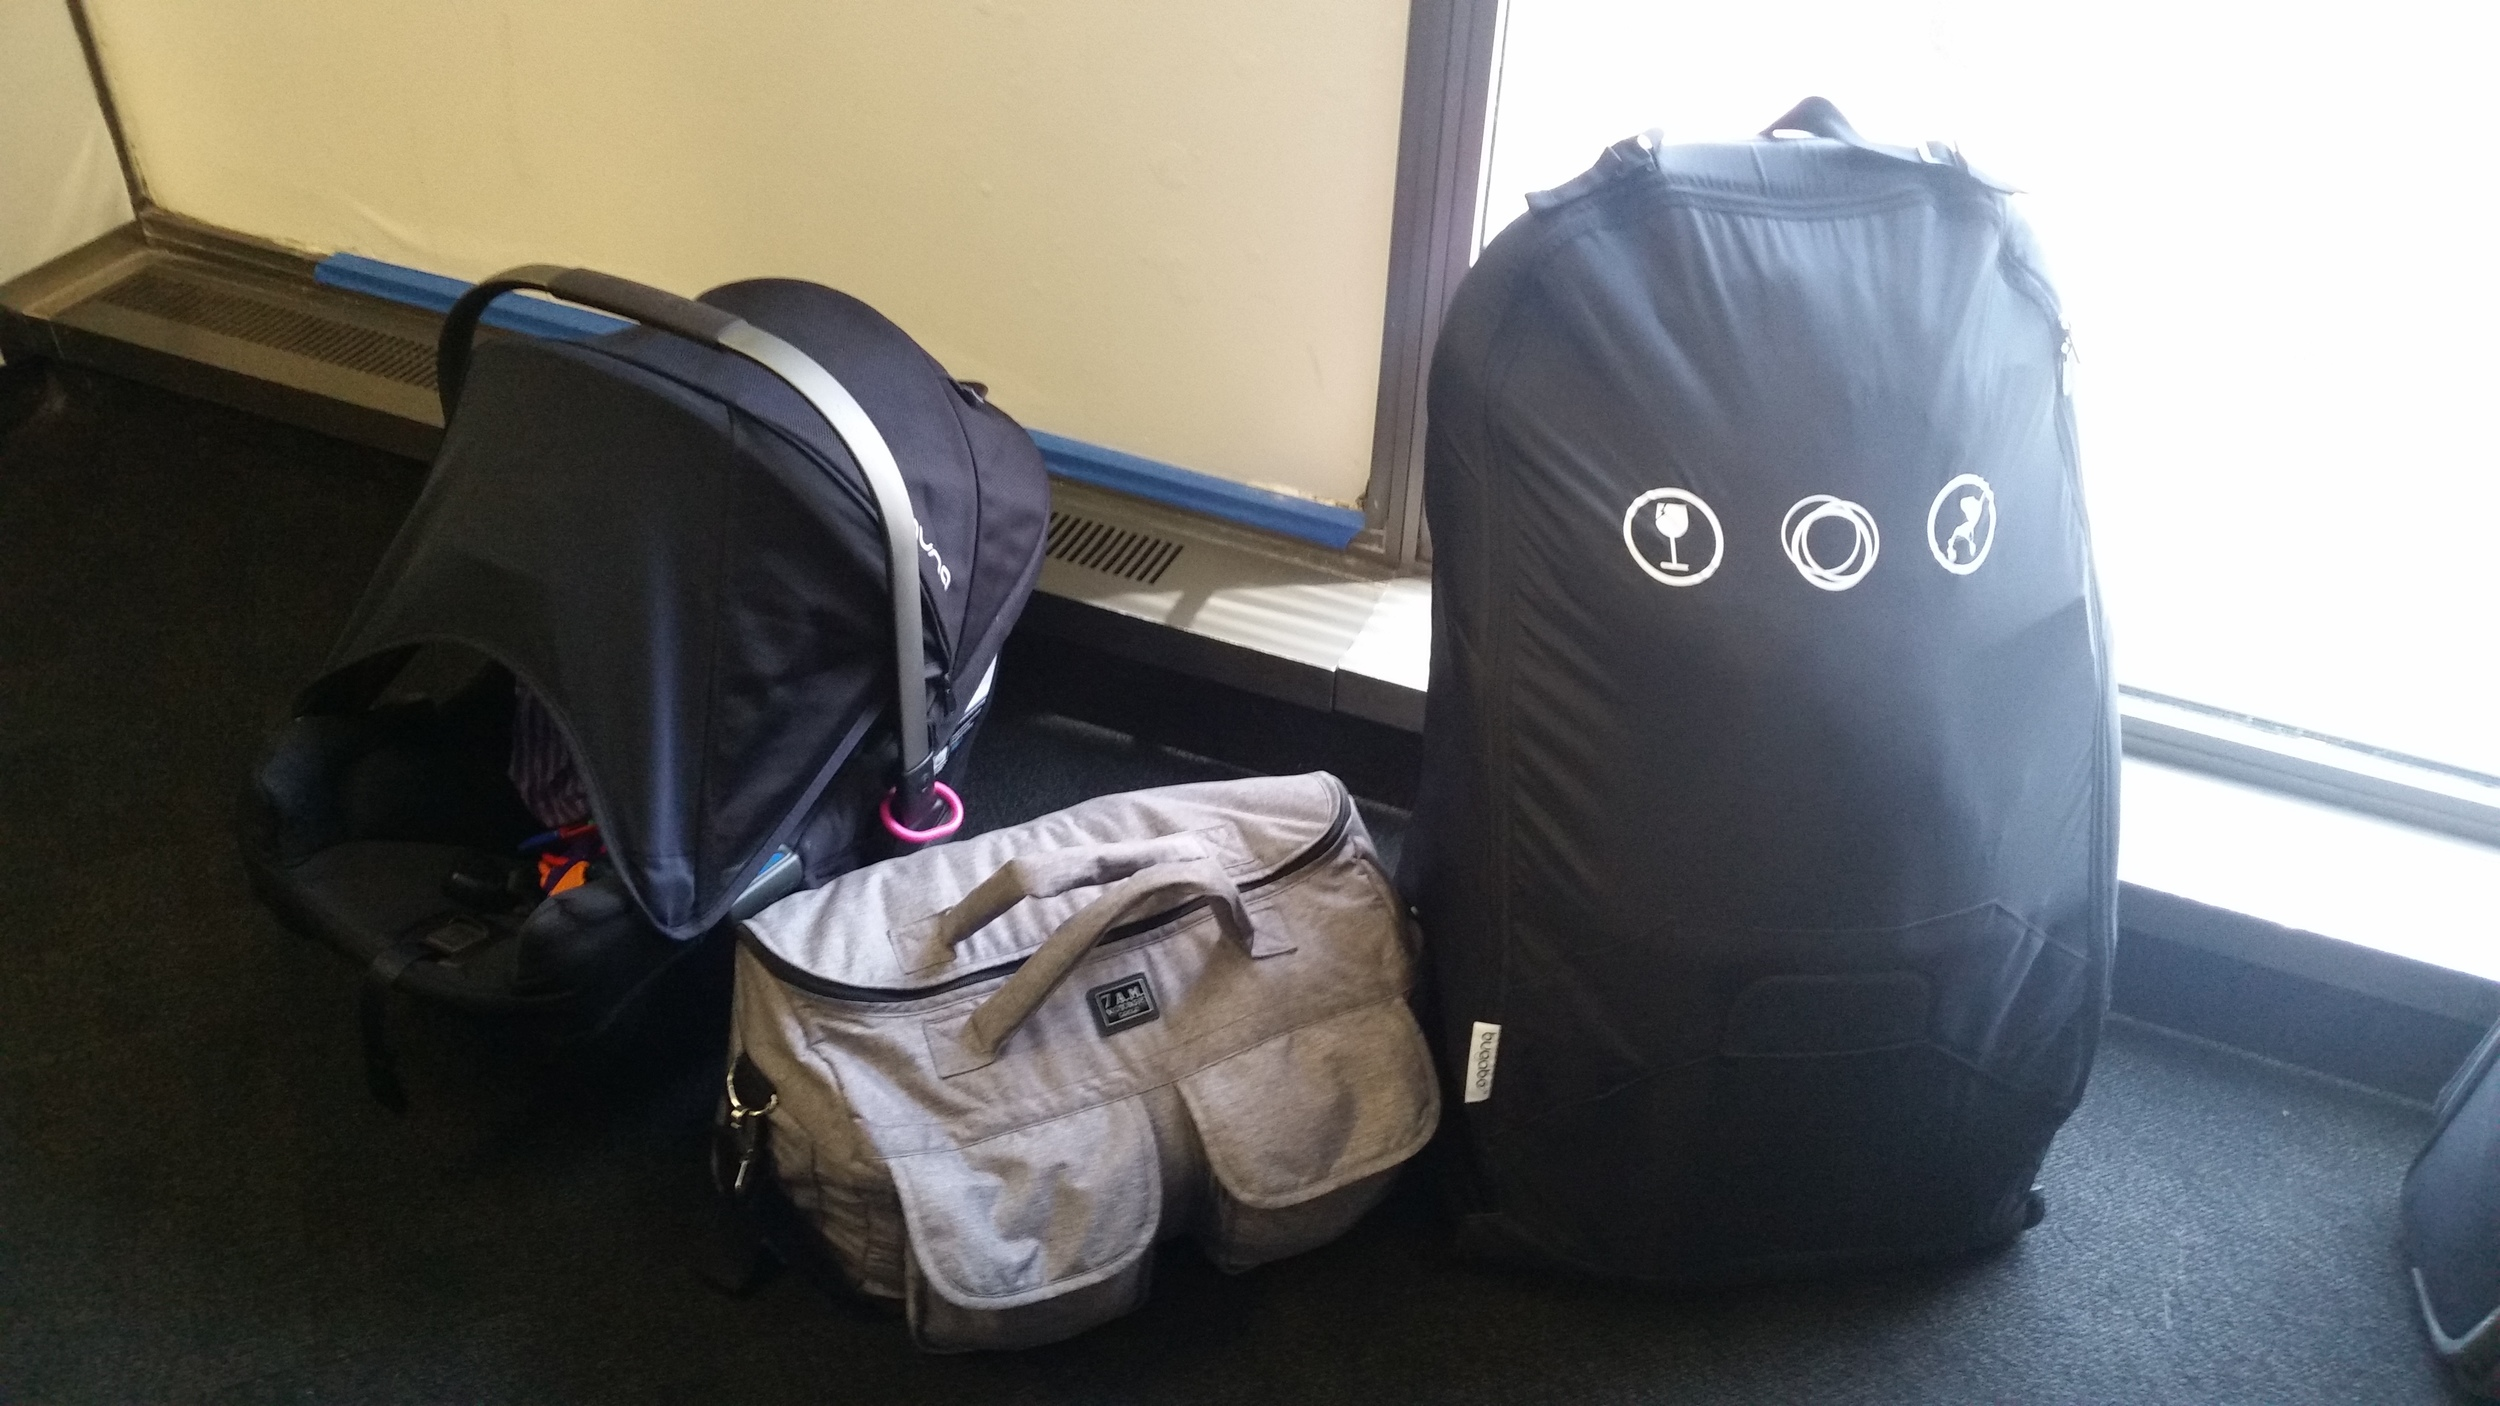 A Pipa, Voyage Bag and Bee all walked into an airport...